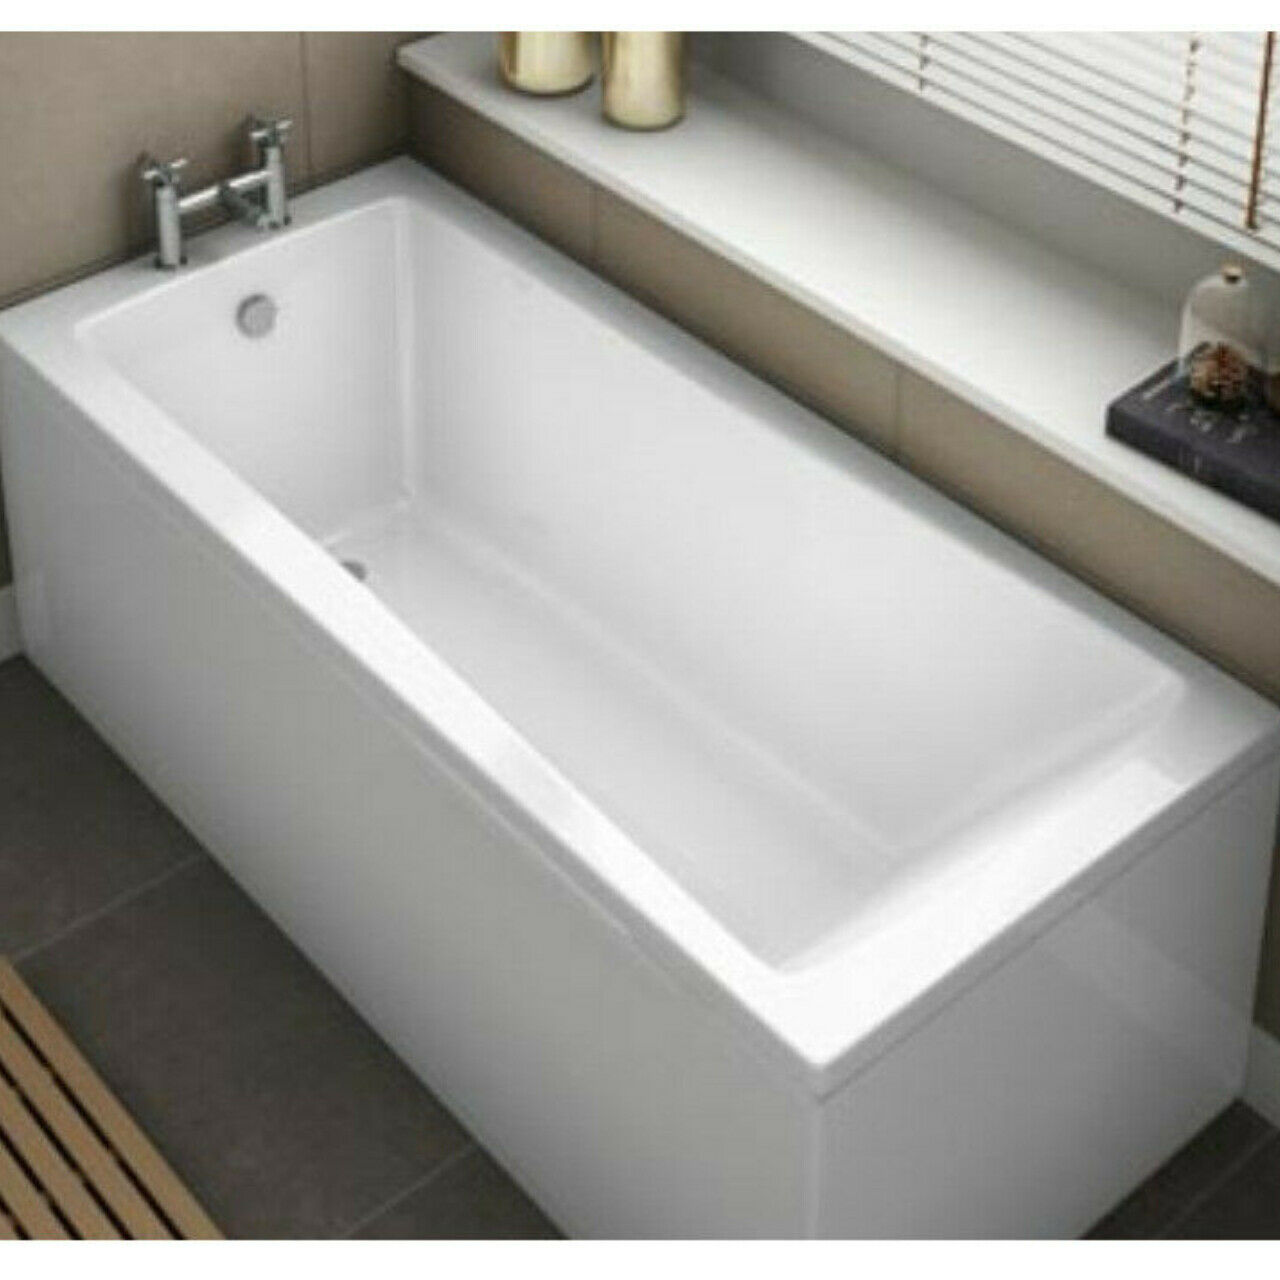 MODERN SQUARE KARTELL Options Single Ended Bath Tub 1700mm x 700mm ...